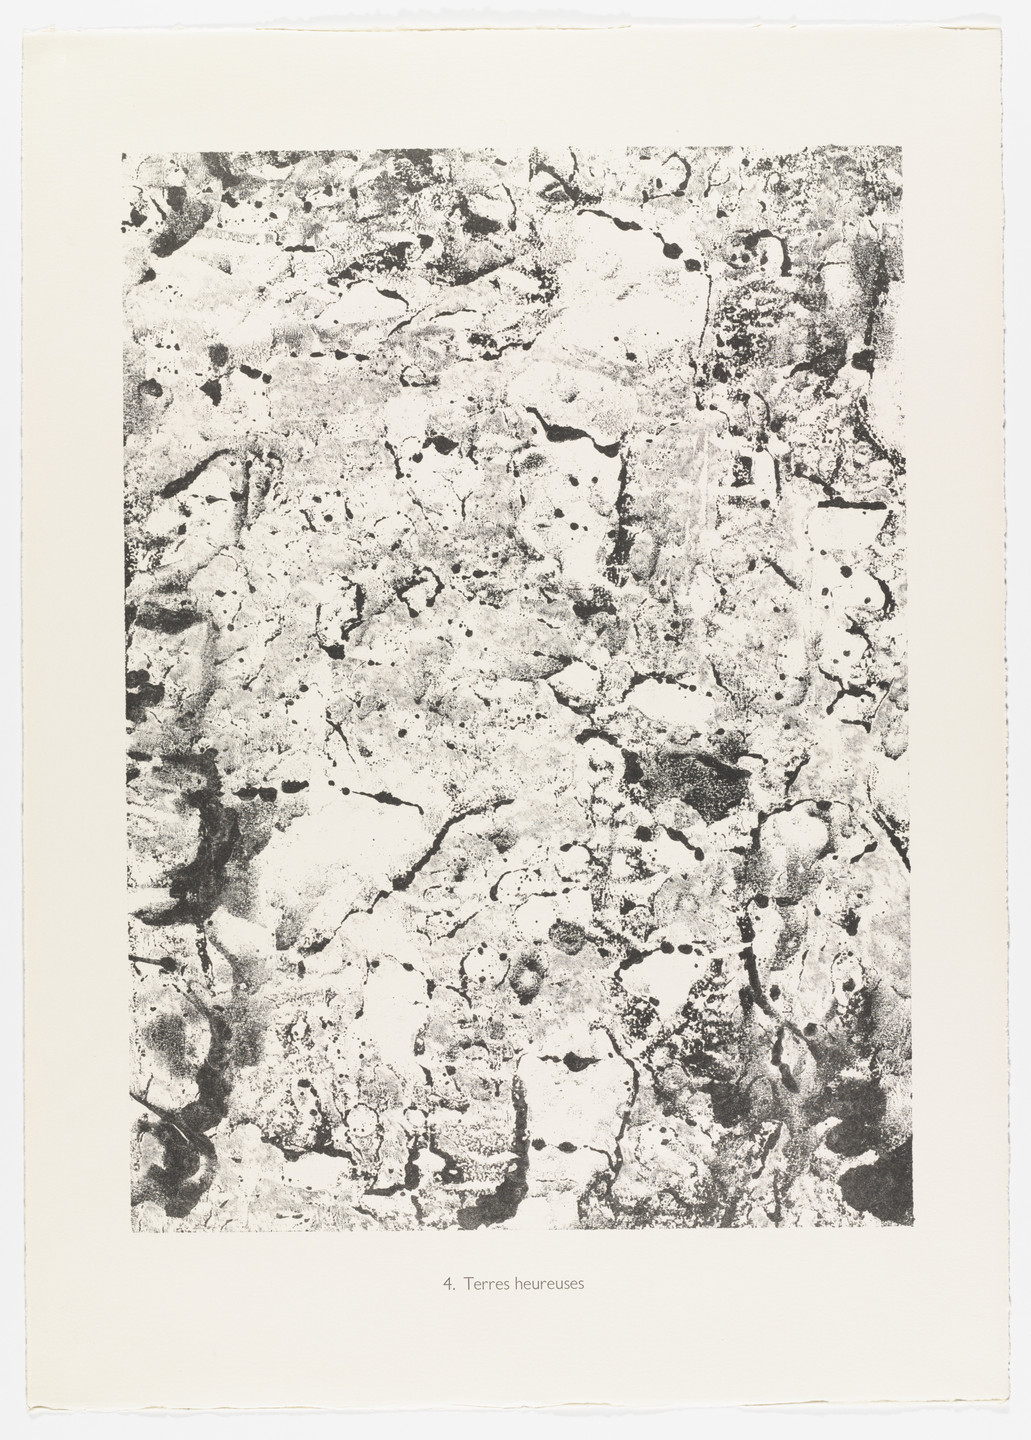 Jean Dubuffet. Happy Earths (Terres heureuses) from Elements, Moments (Eléments, Moments) from Phenomena (Les Phénomènes). 1959